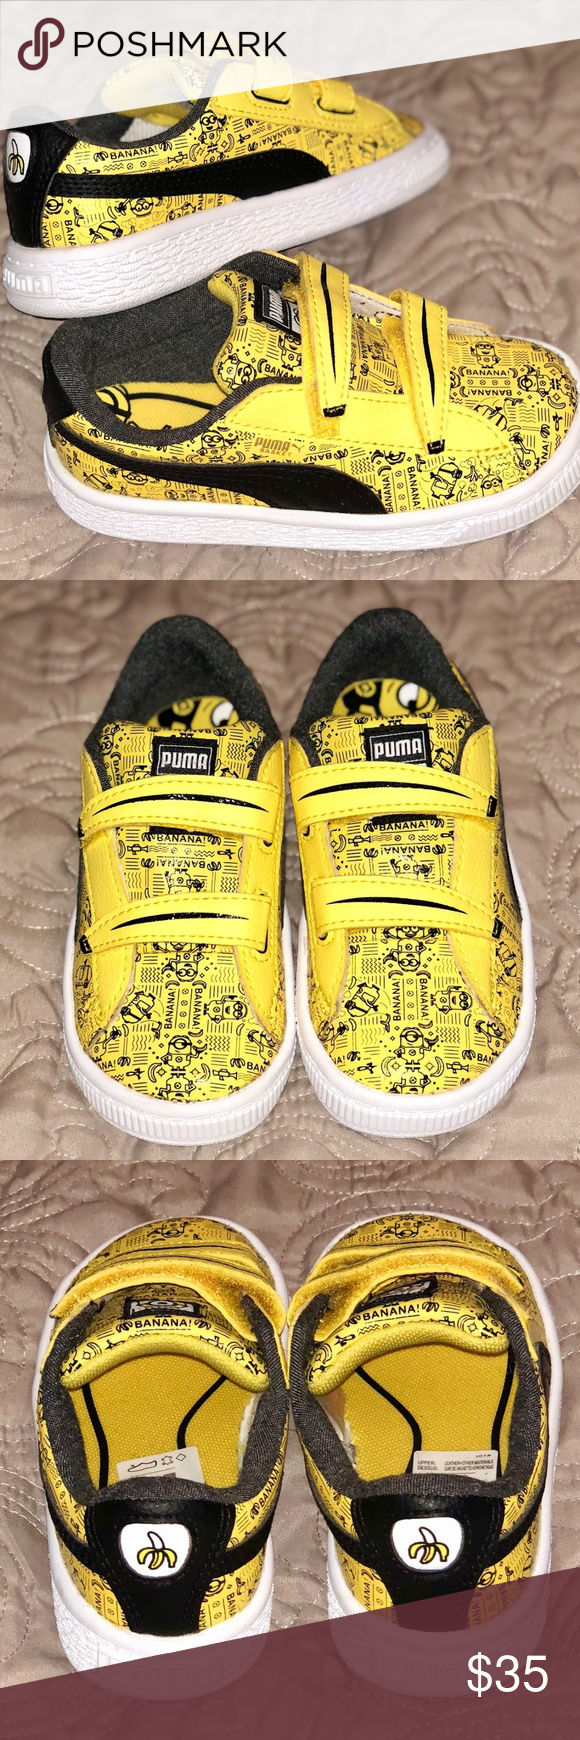 Puma Minions Basket V Kids Sneakers Puma Kids Minion yellow - Puma black  Never been worn. Does not come with tags or original box. c3415e575